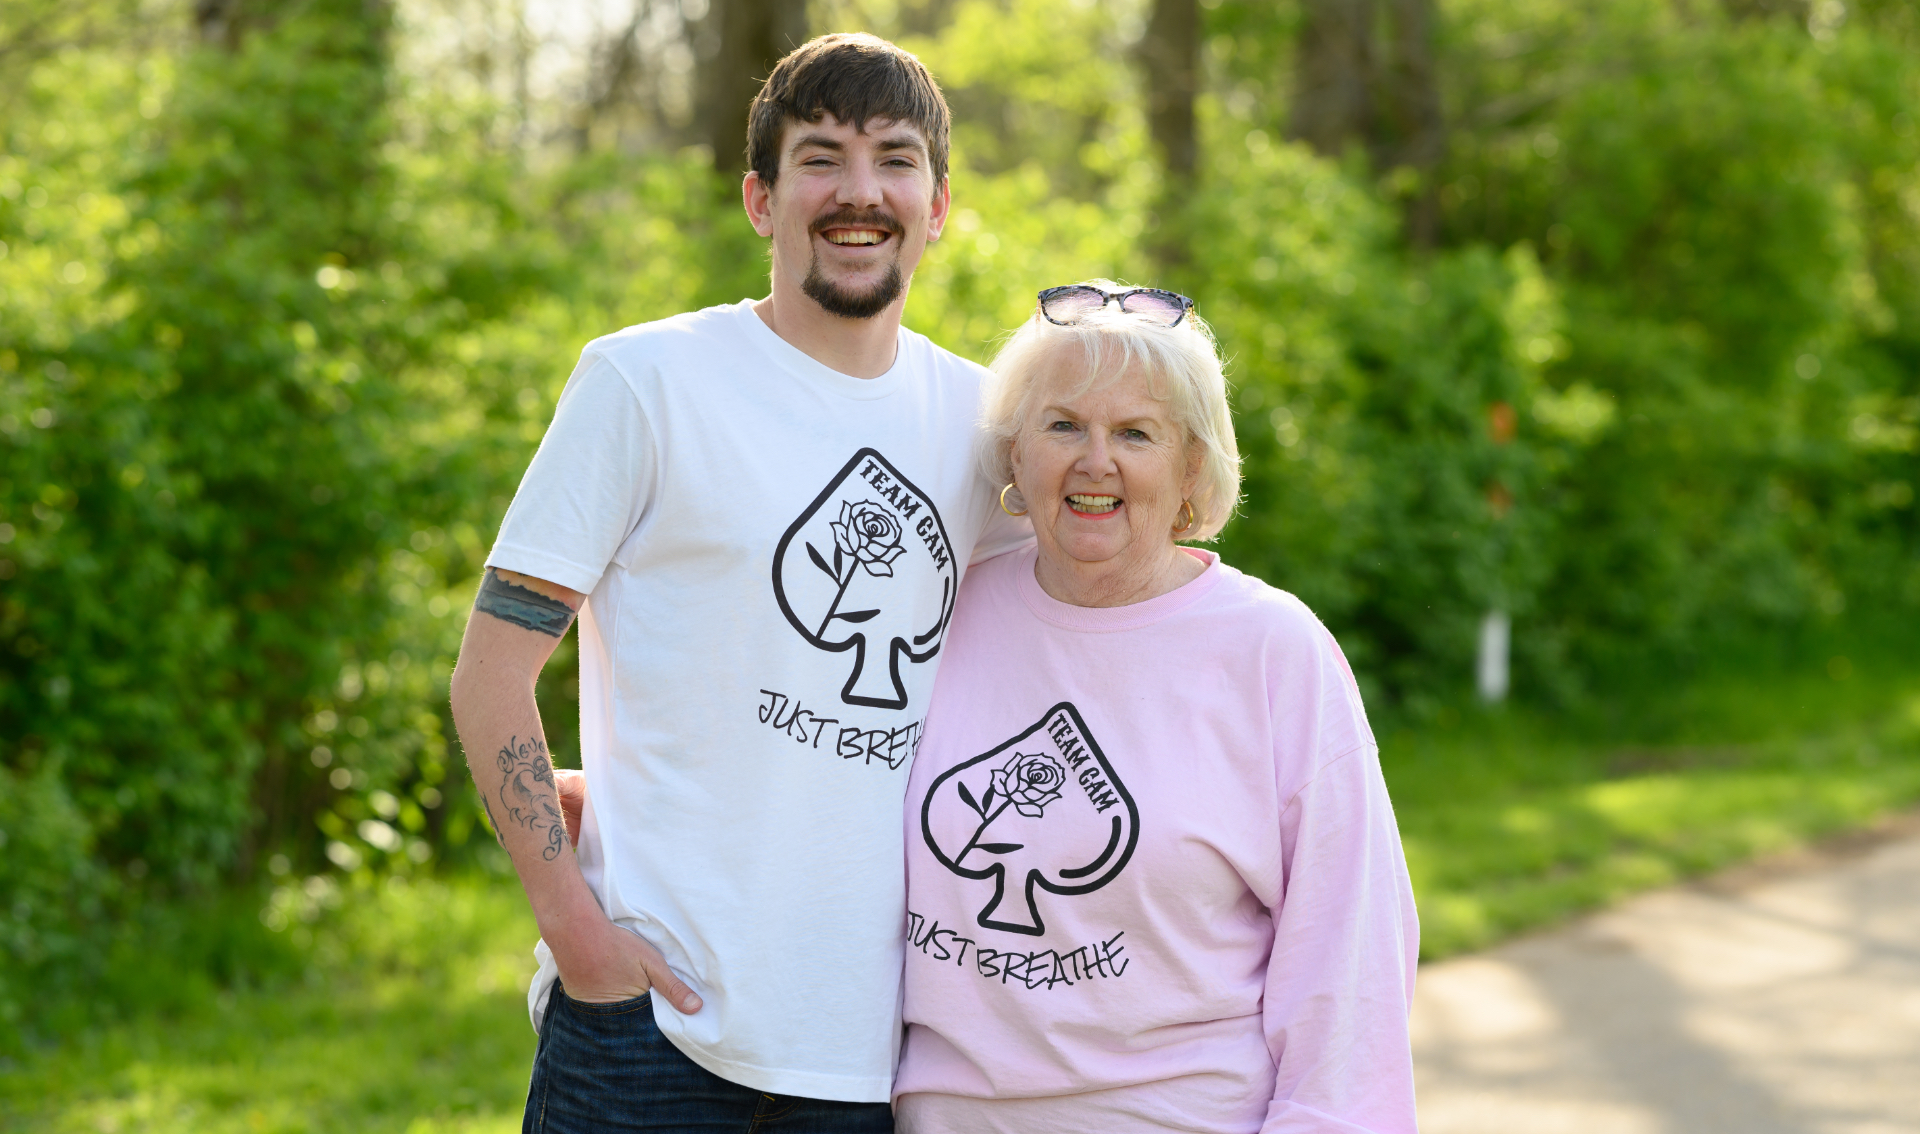 Cameron and his grandmother, an older white woman with white hair, stand and smile side by side. She is wearing a pink long sleeved 'Team Cam' shirt with her spectacles on her head.